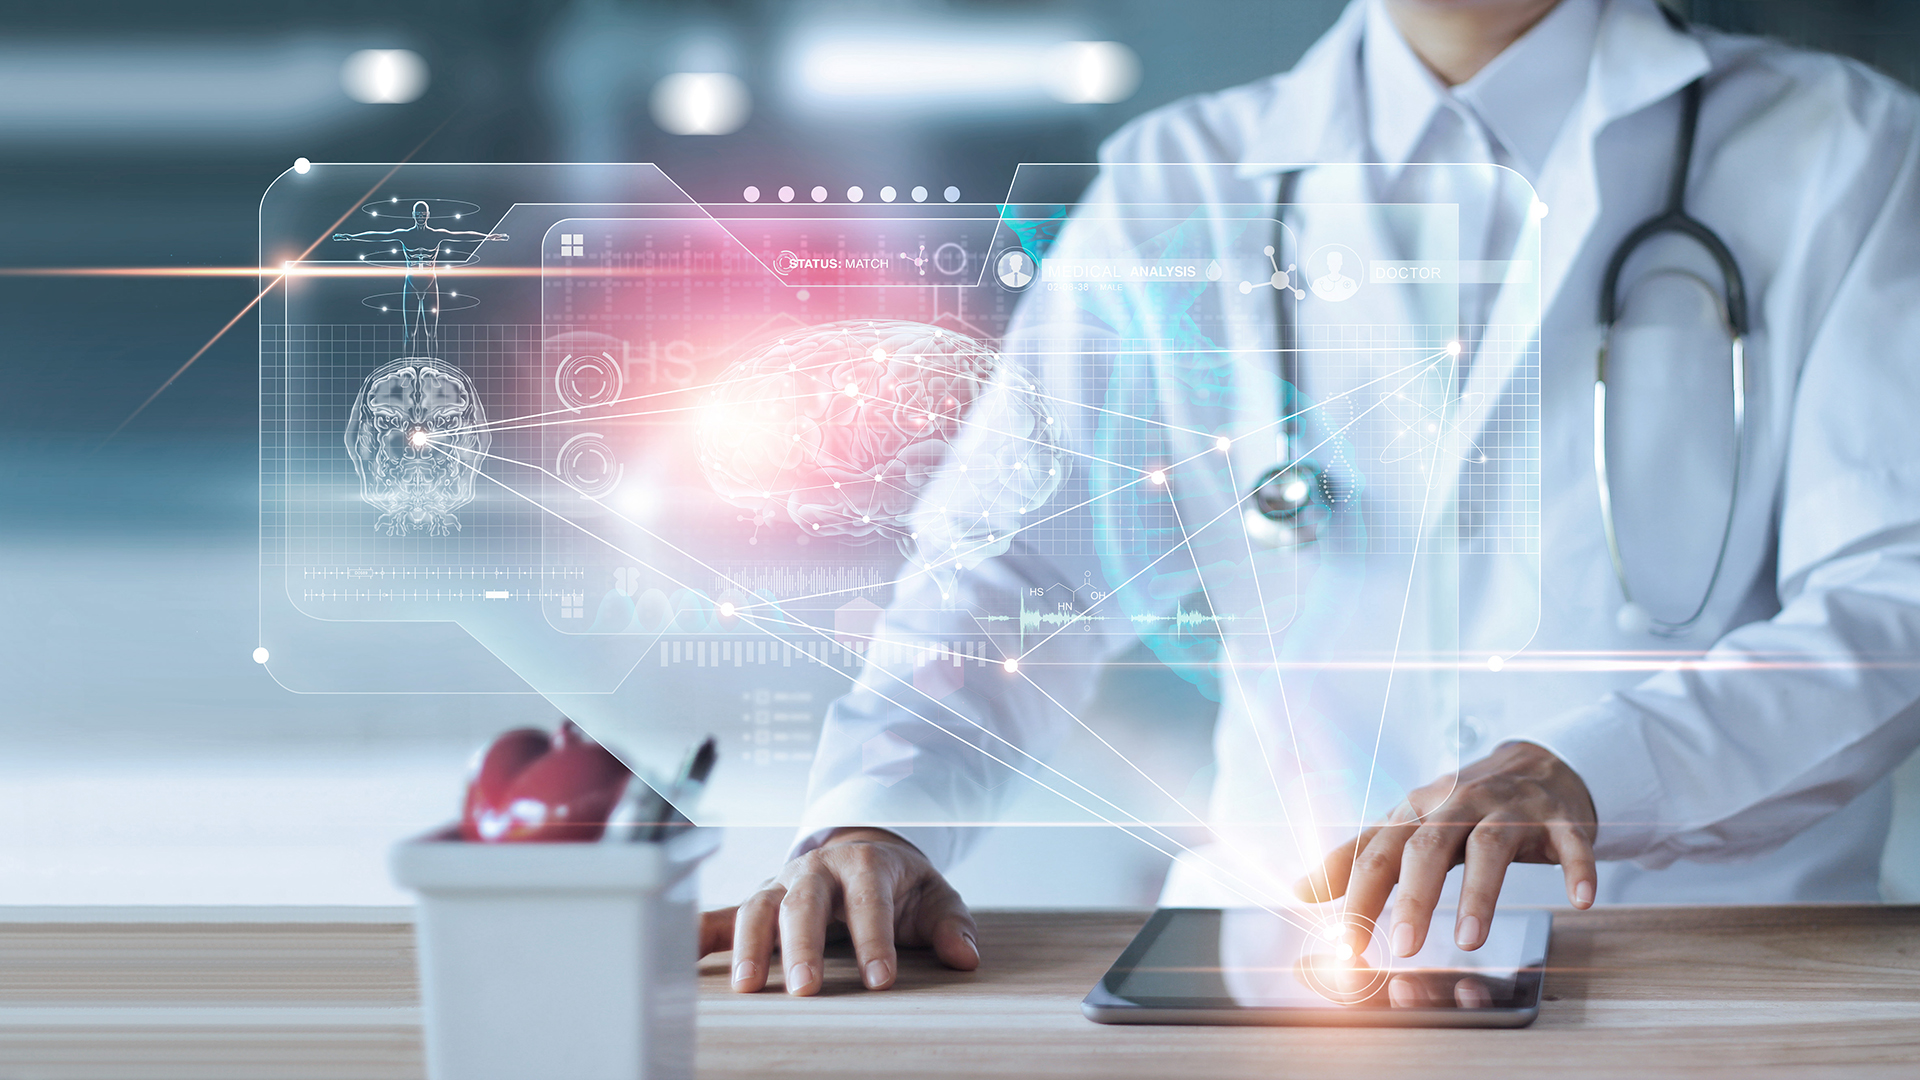 Latest and Most Advanced Technology Applied to Health Care